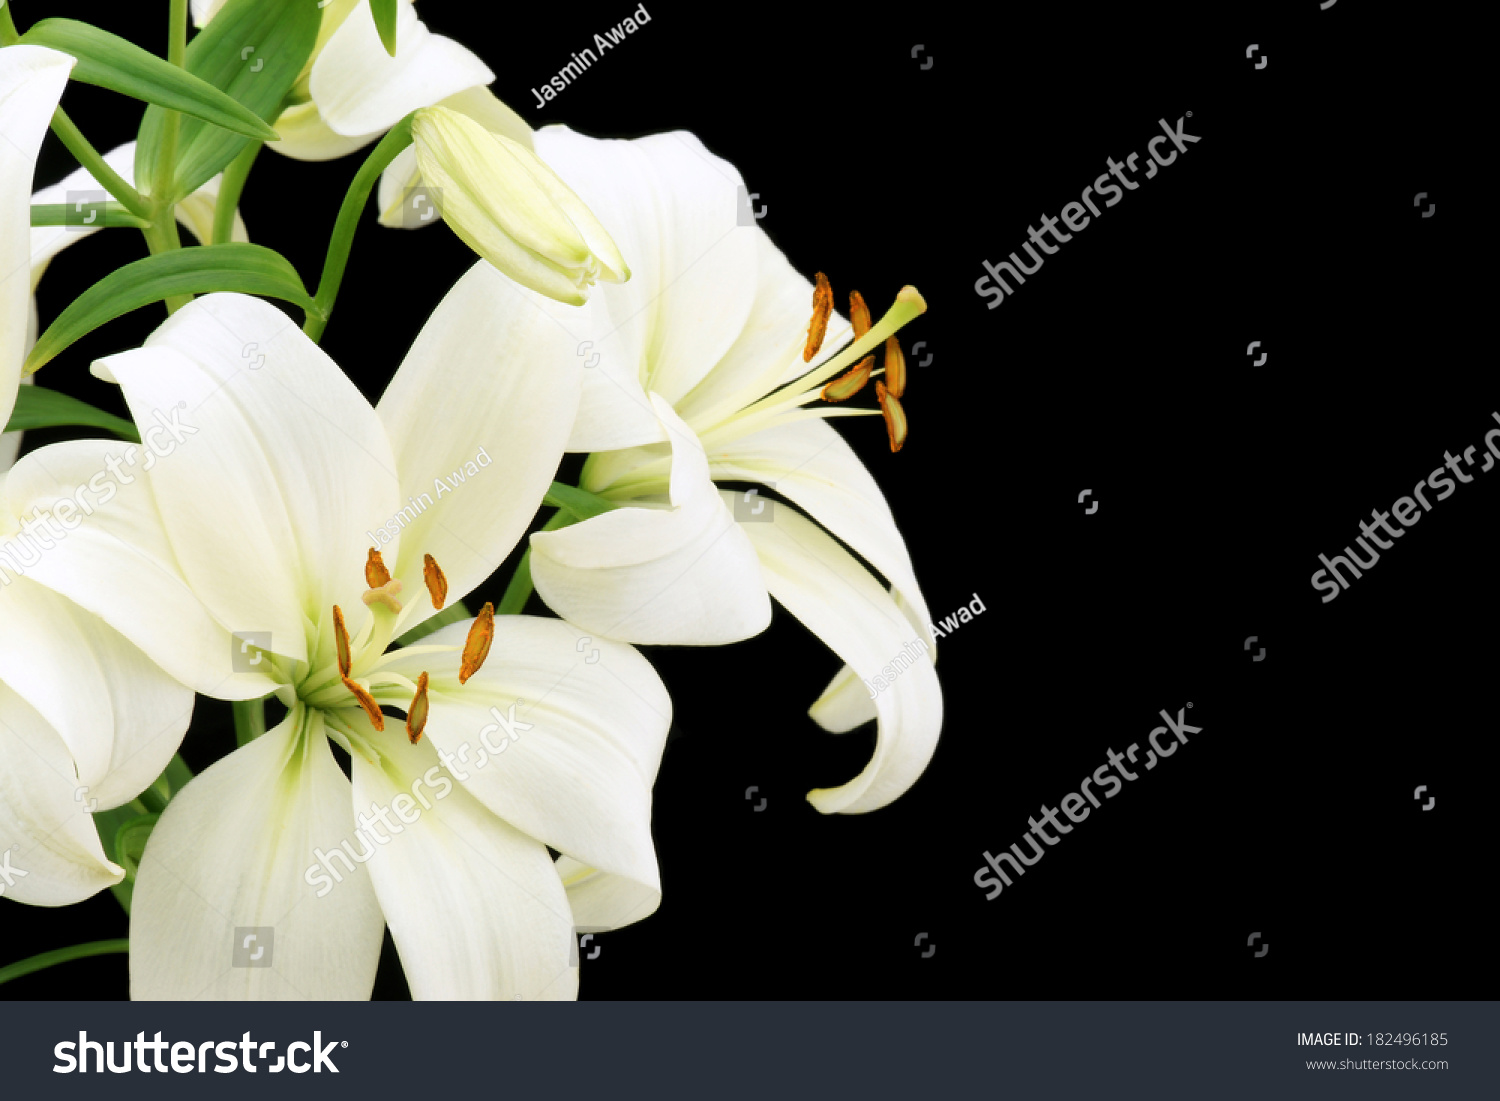 Beautiful lily flower on black background stock photo edit now beautiful lily flower on black background with copy space izmirmasajfo